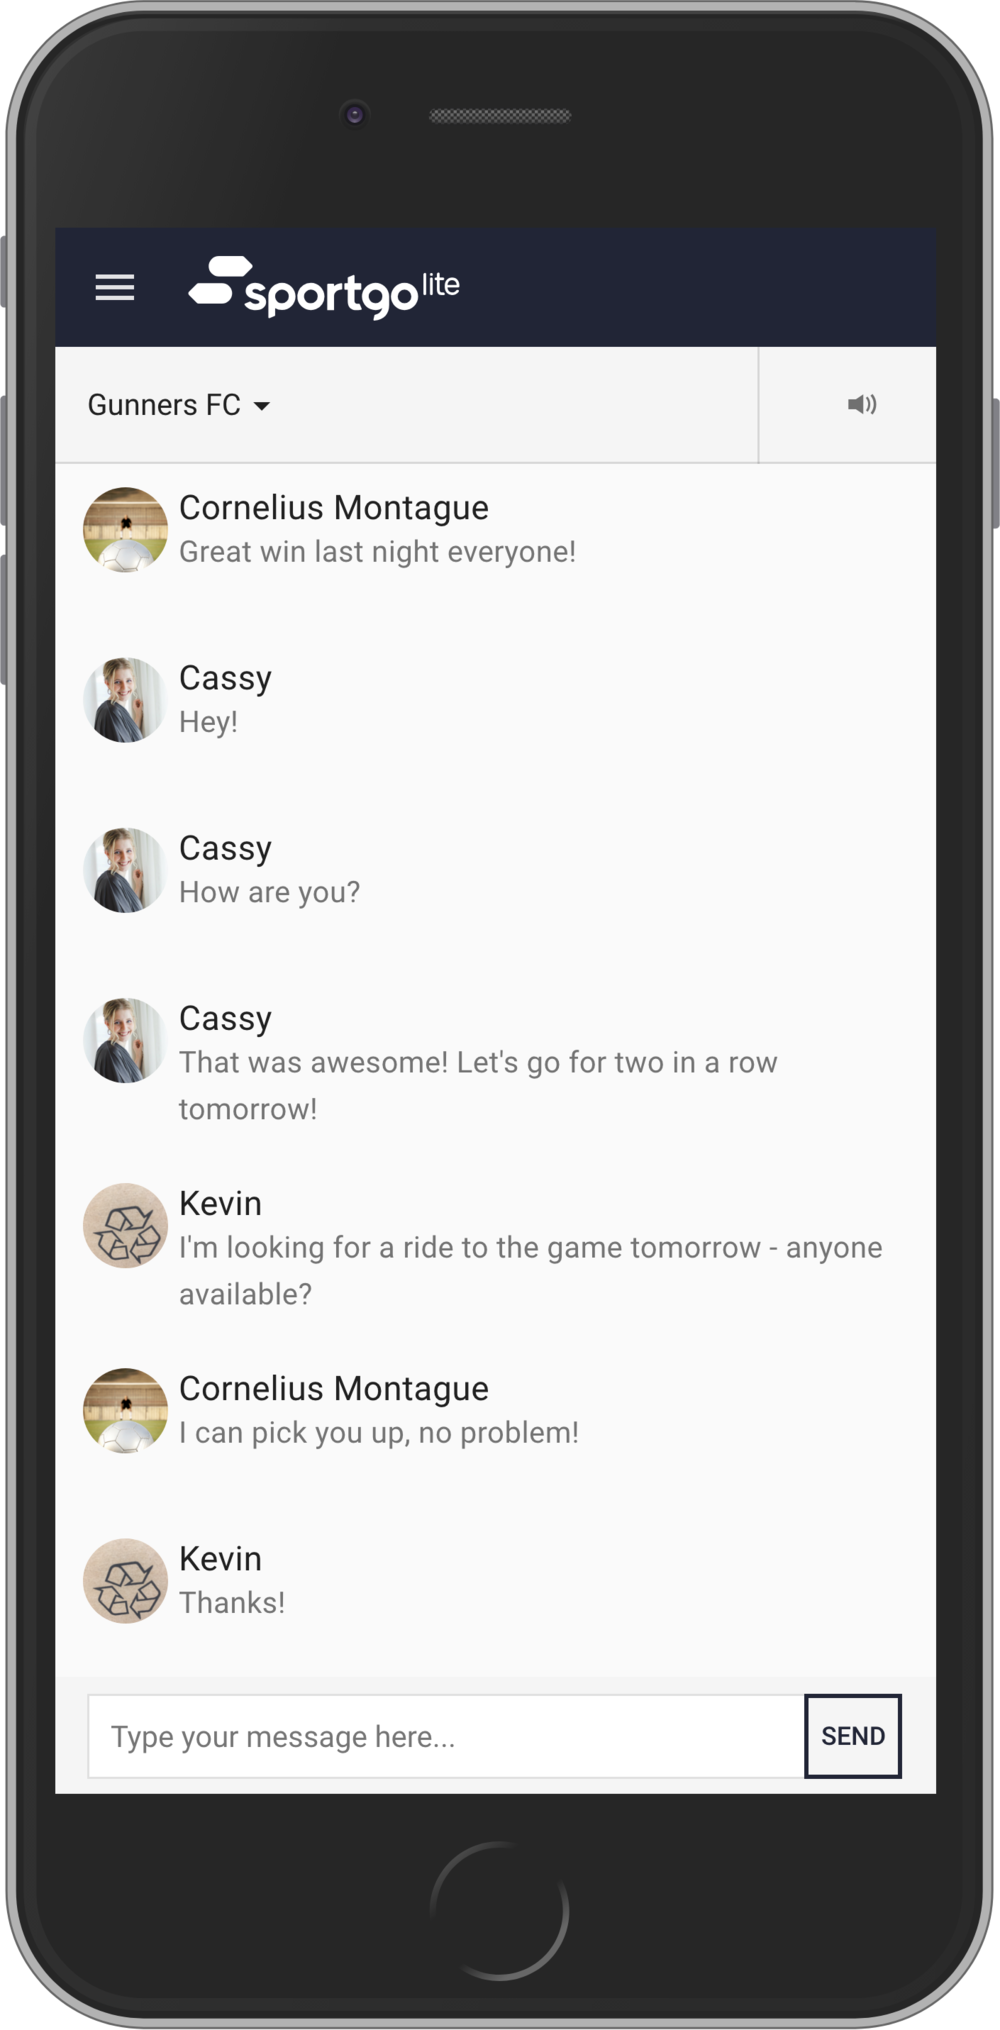 Team Communication - Easily contact your team, coordinate tasks and send last minute updates so that everyone is on the same page.